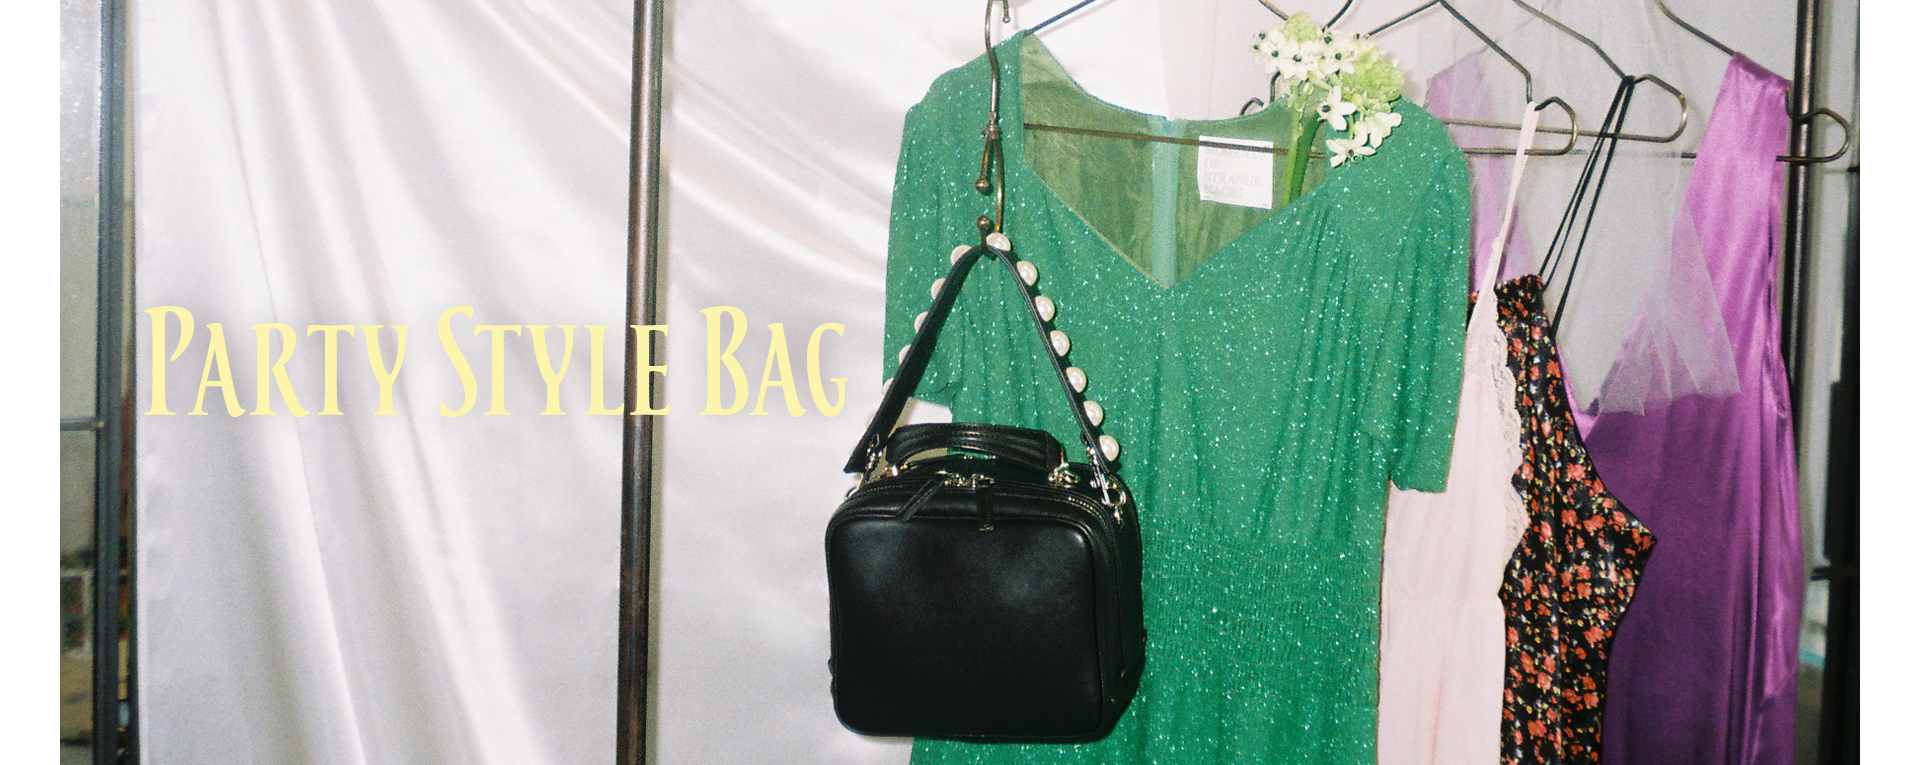 party style bag